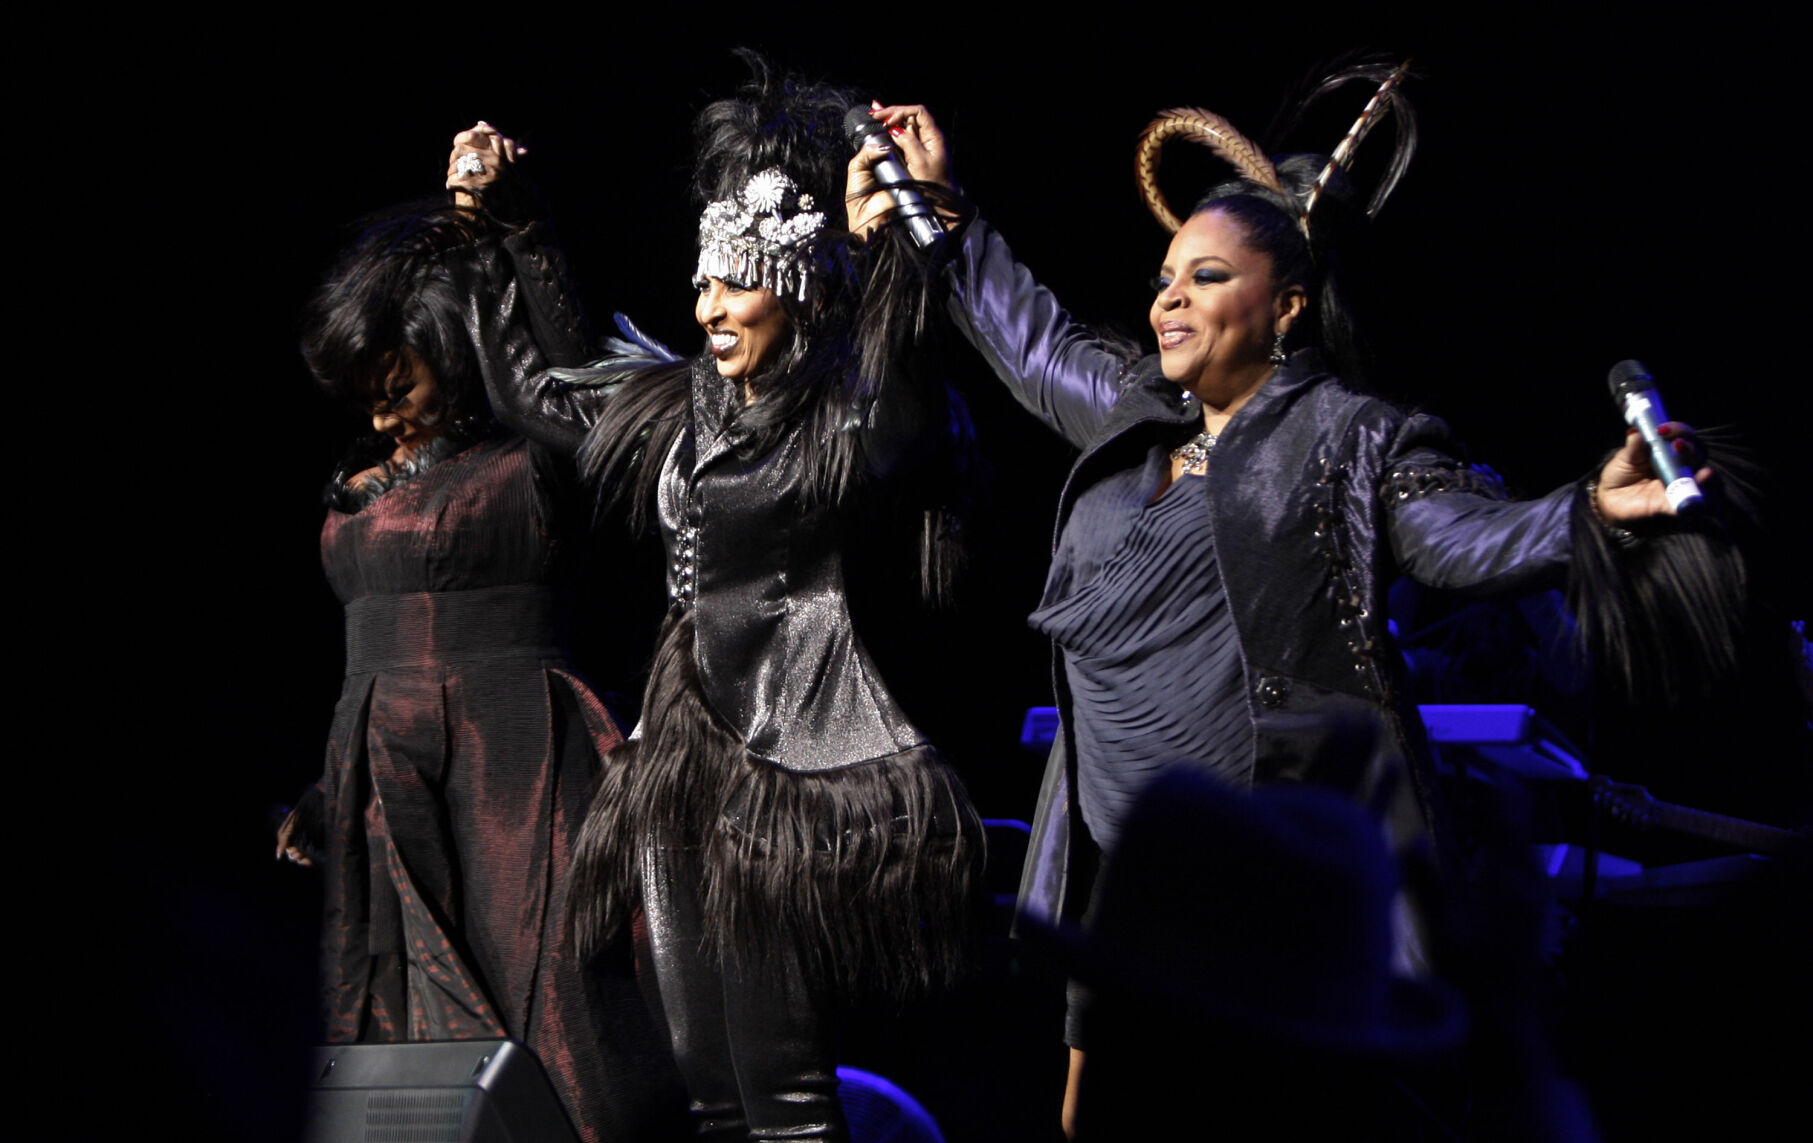 """<p>Patti LaBelle, from left, Nona Hendryx and Sarah Dash of the group Labelle greet the crowd during a concert in Los Angeles on Jan. 29, 2009. Dash, who co-founded the all-female singing group best known for their raucous 1974 hit """"Lady Marmalade,"""" has died. She was 76.</p>"""